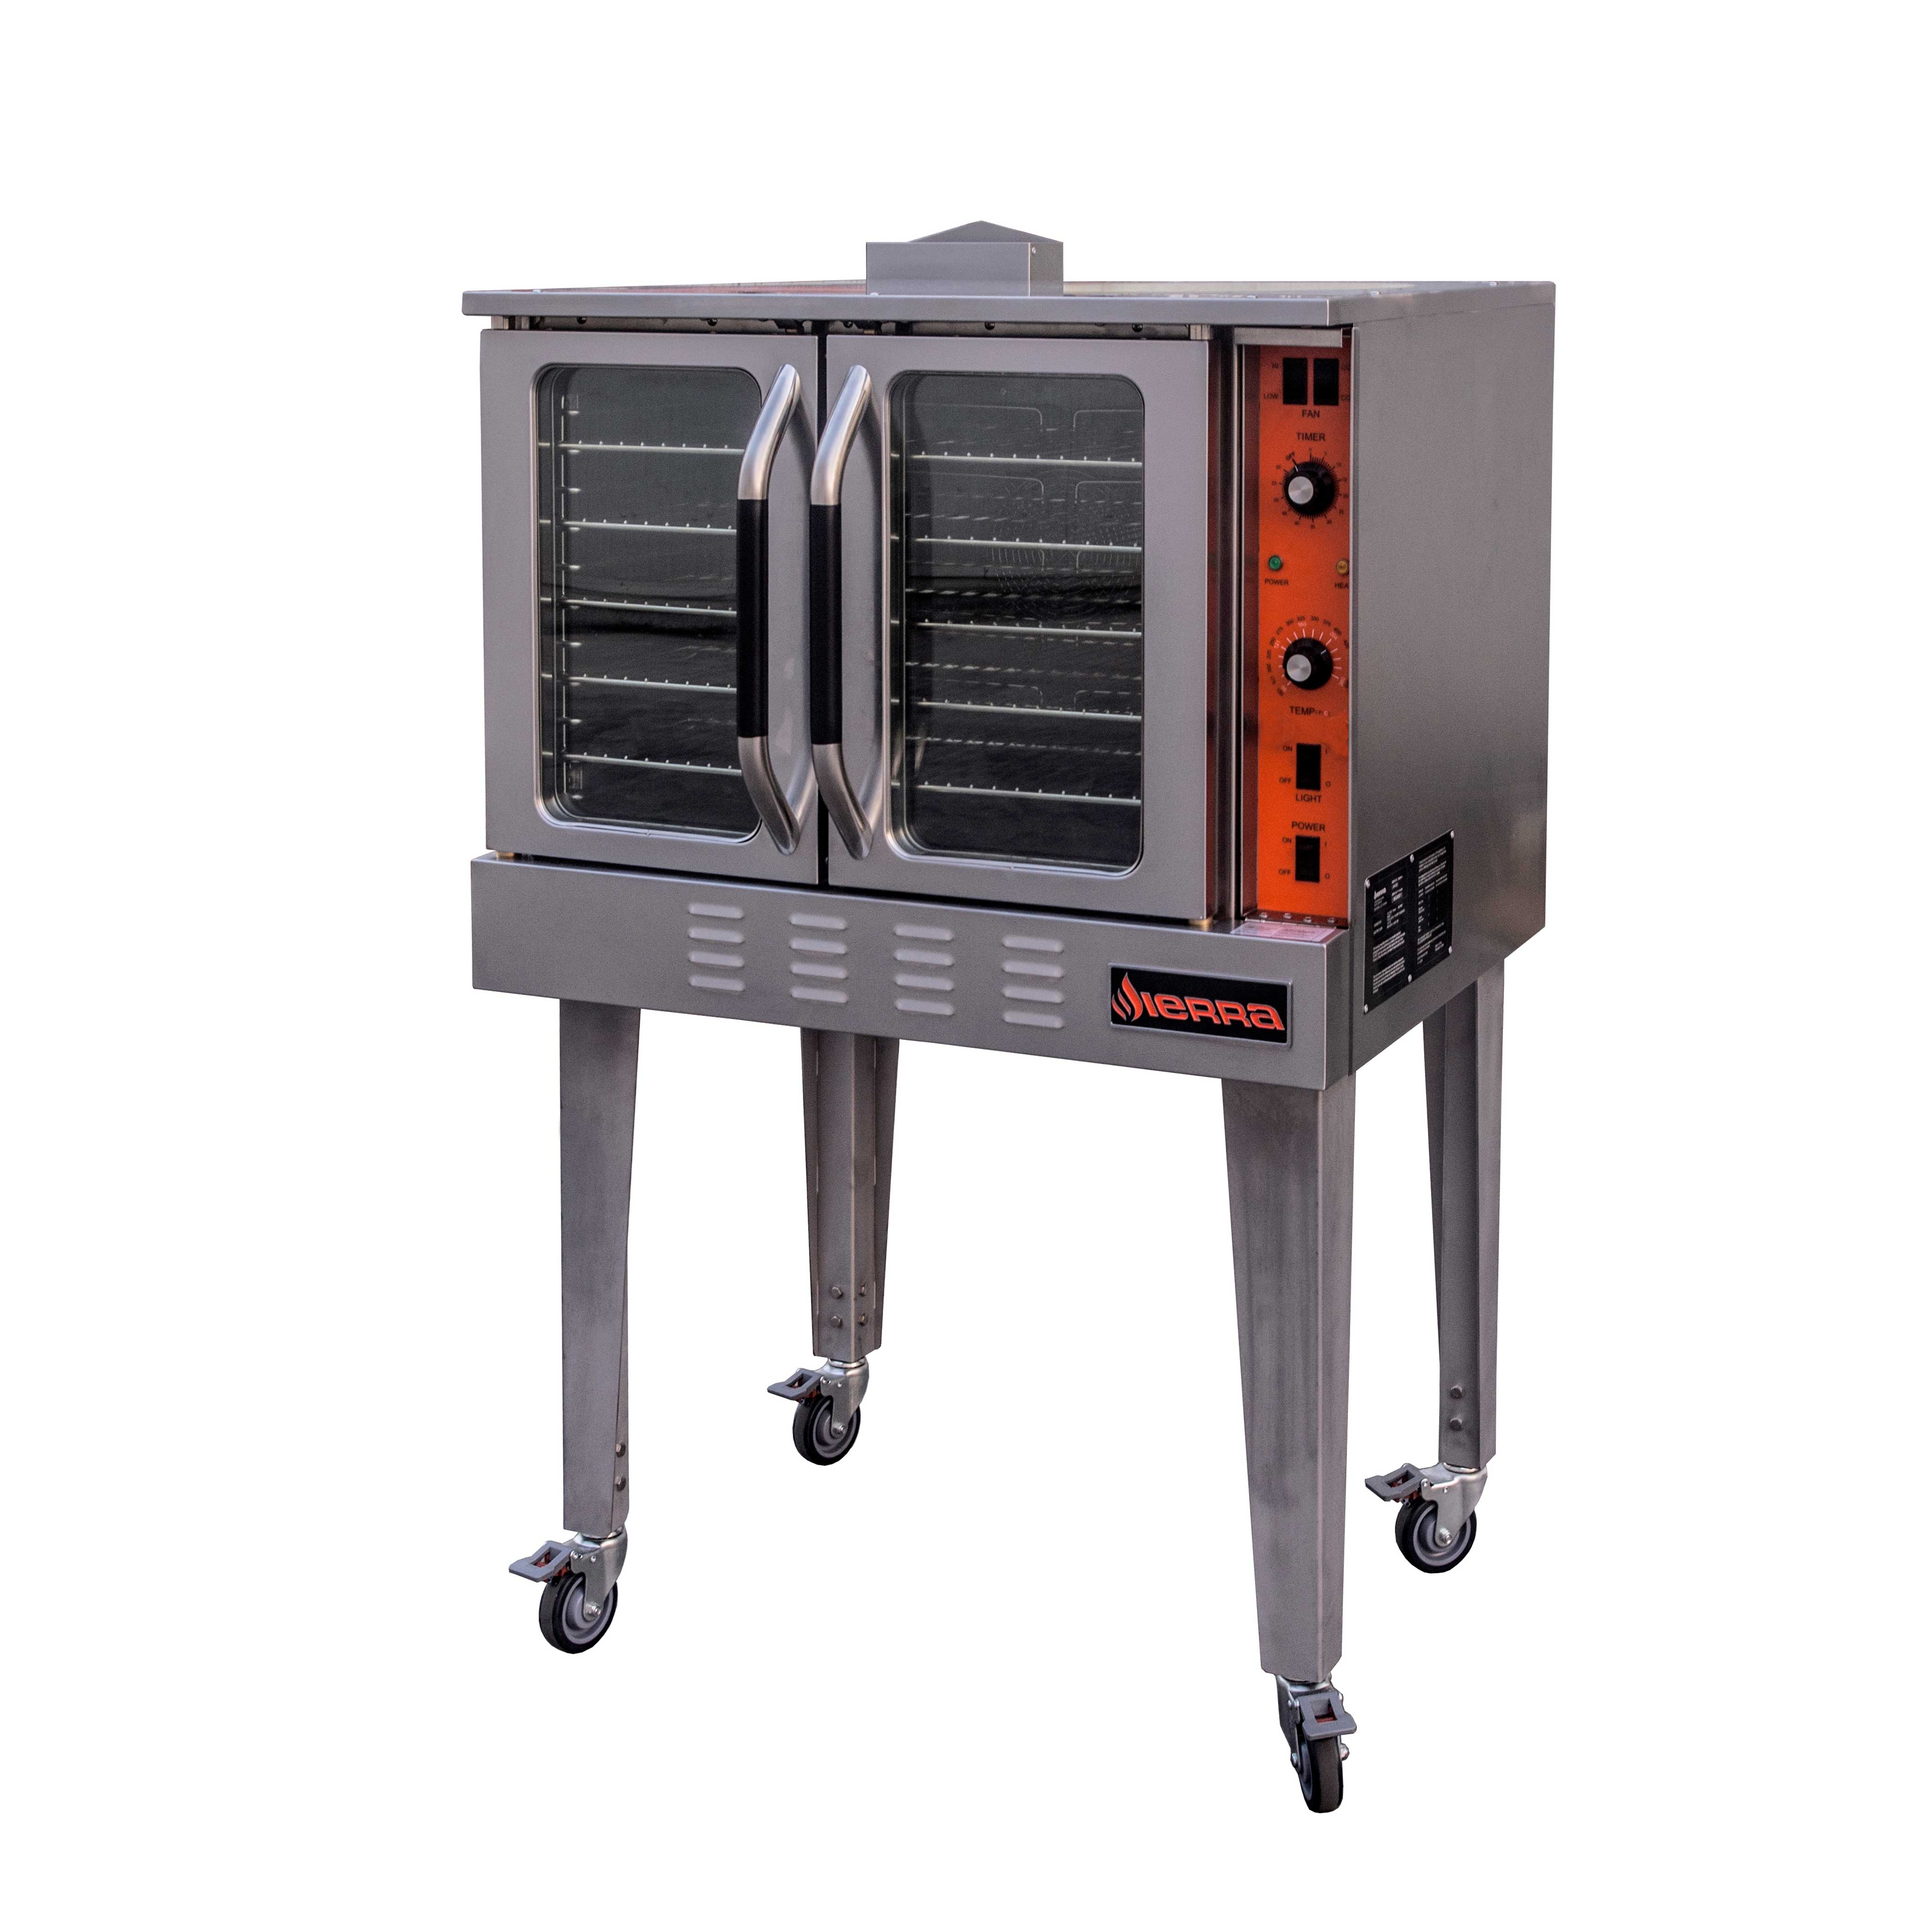 MVP SRCO convection oven, gas